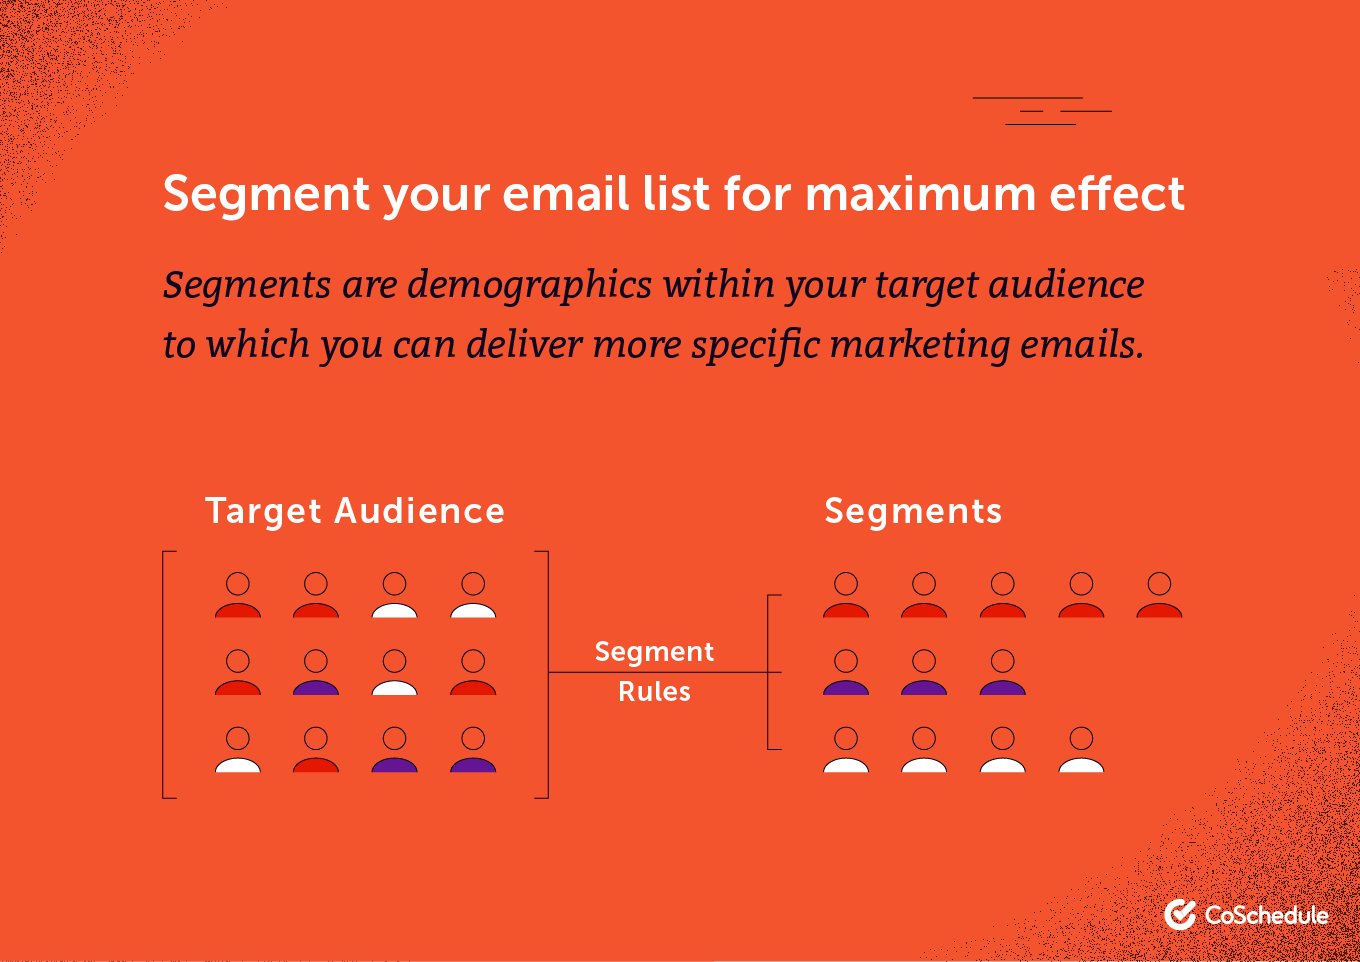 Segment your email list for maximum effect